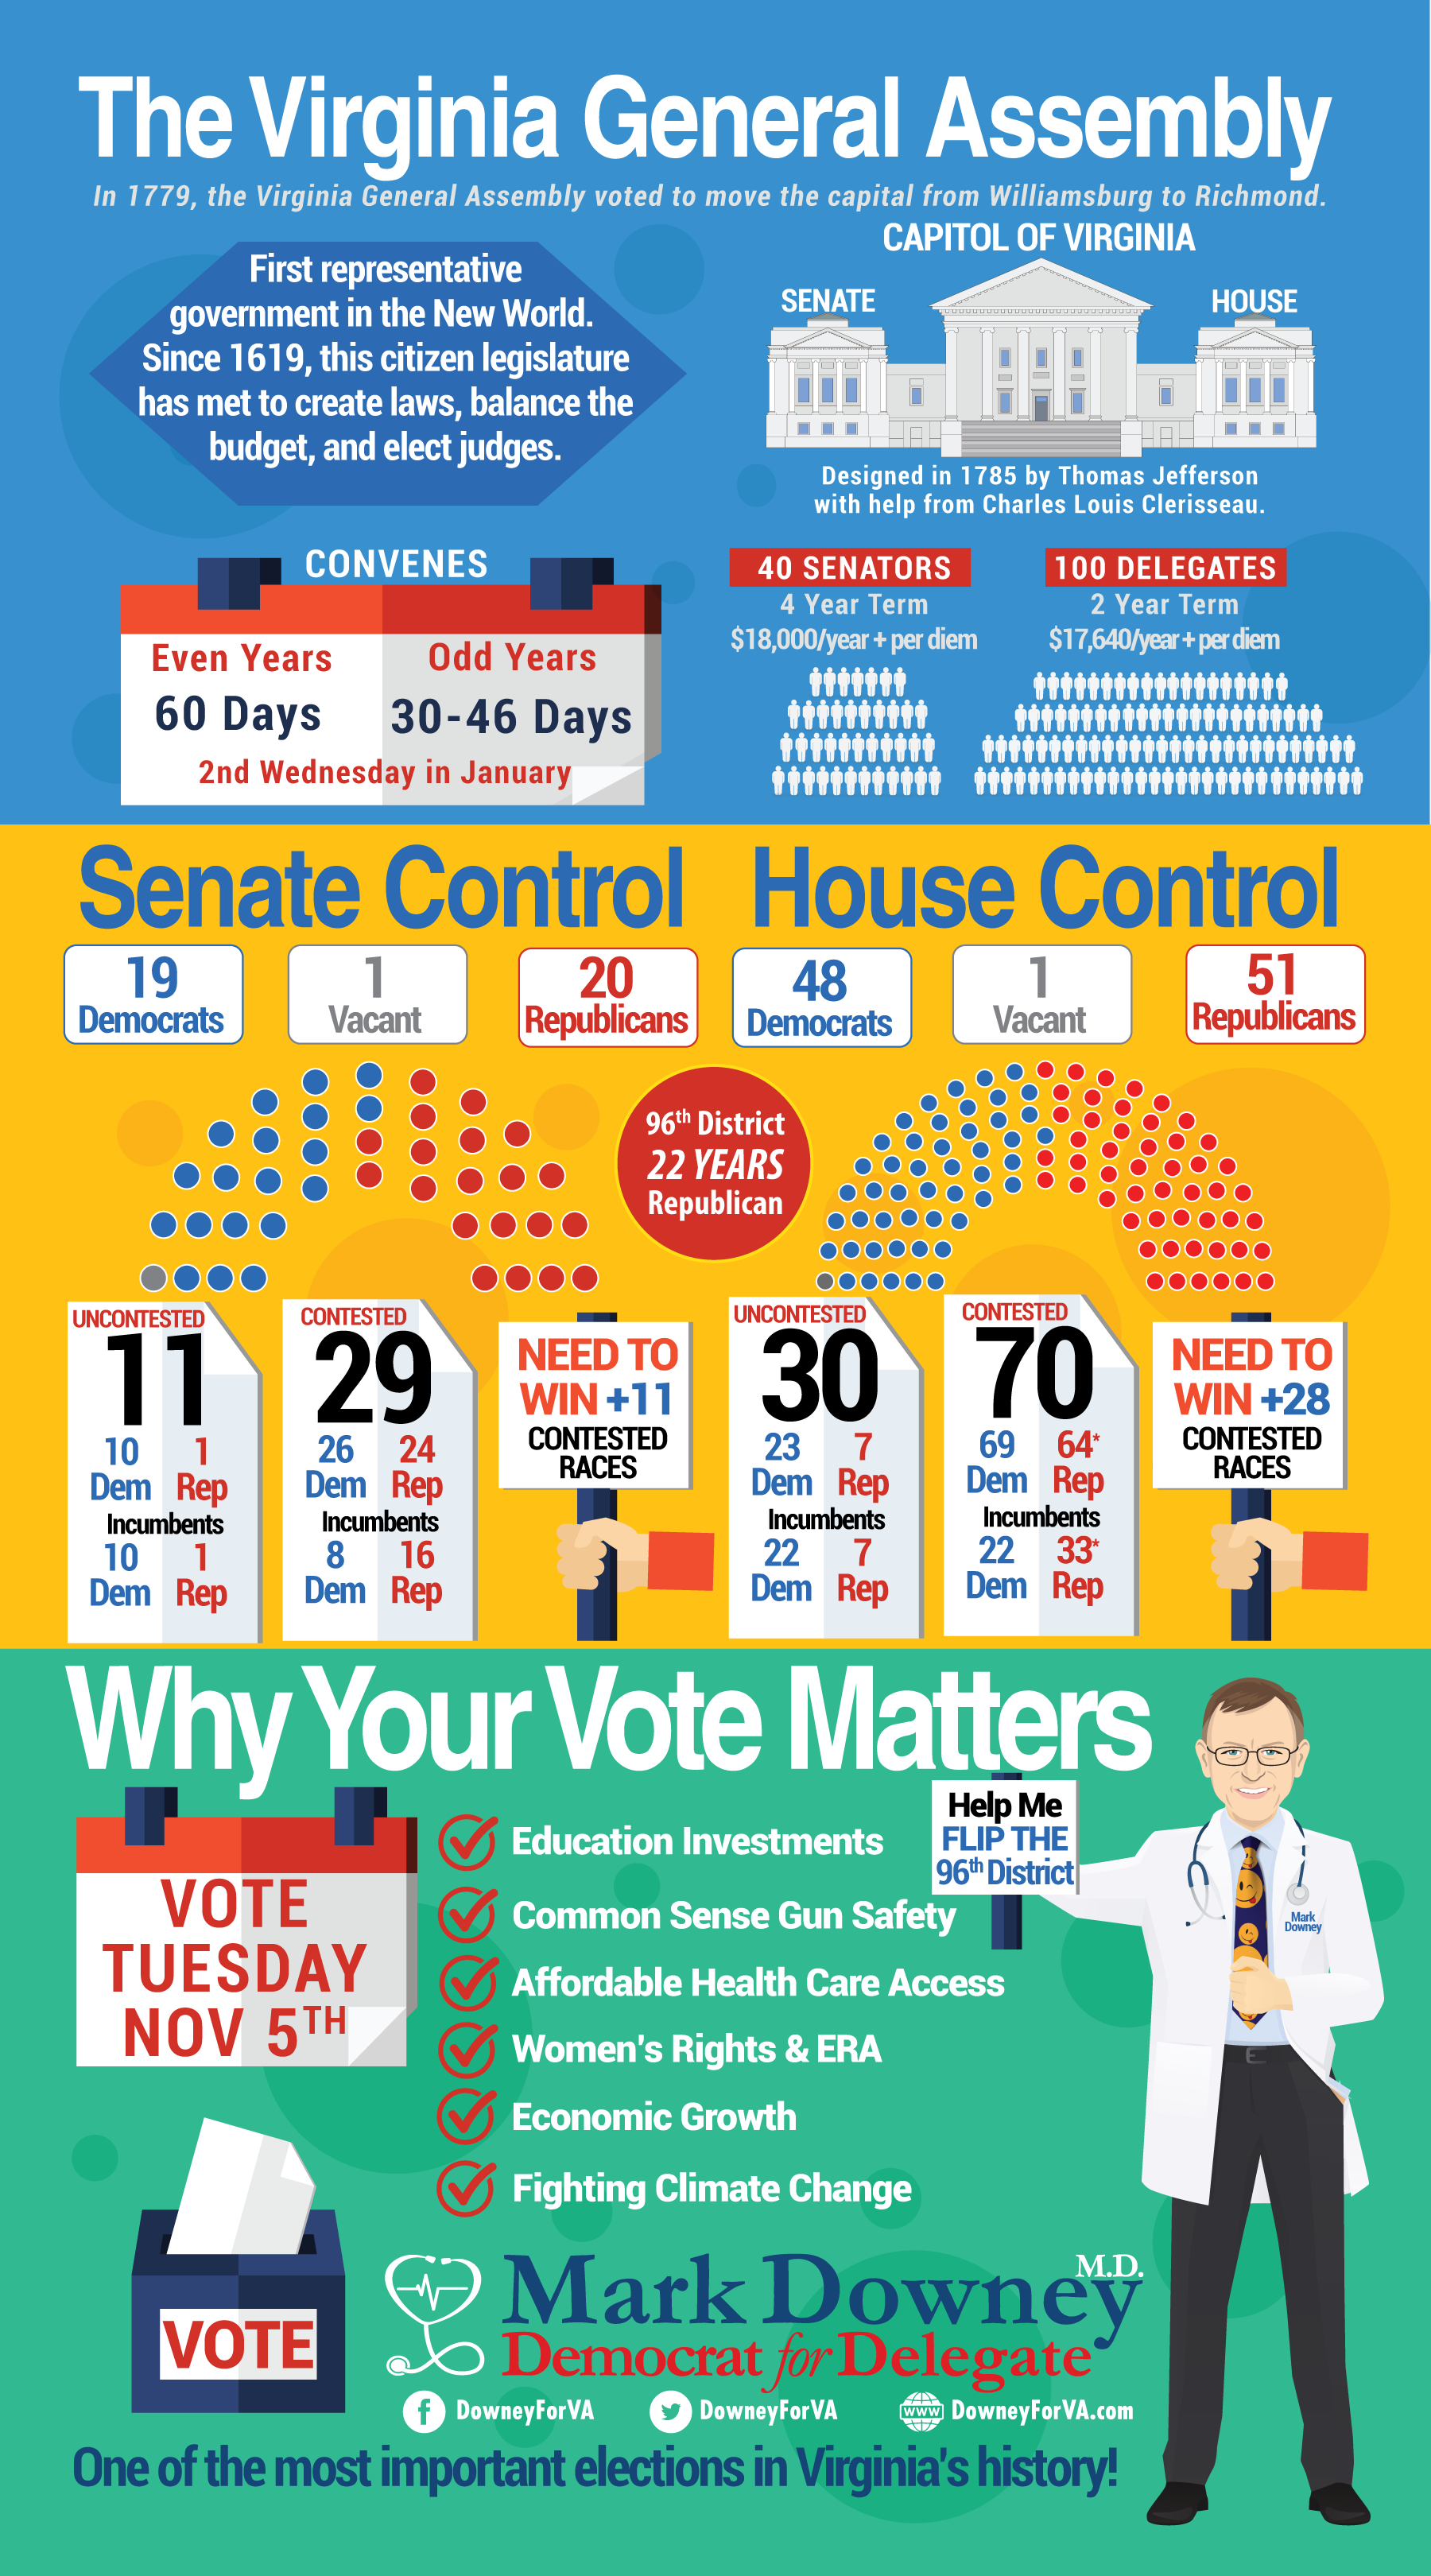 The Virginia General Assembly Infographic